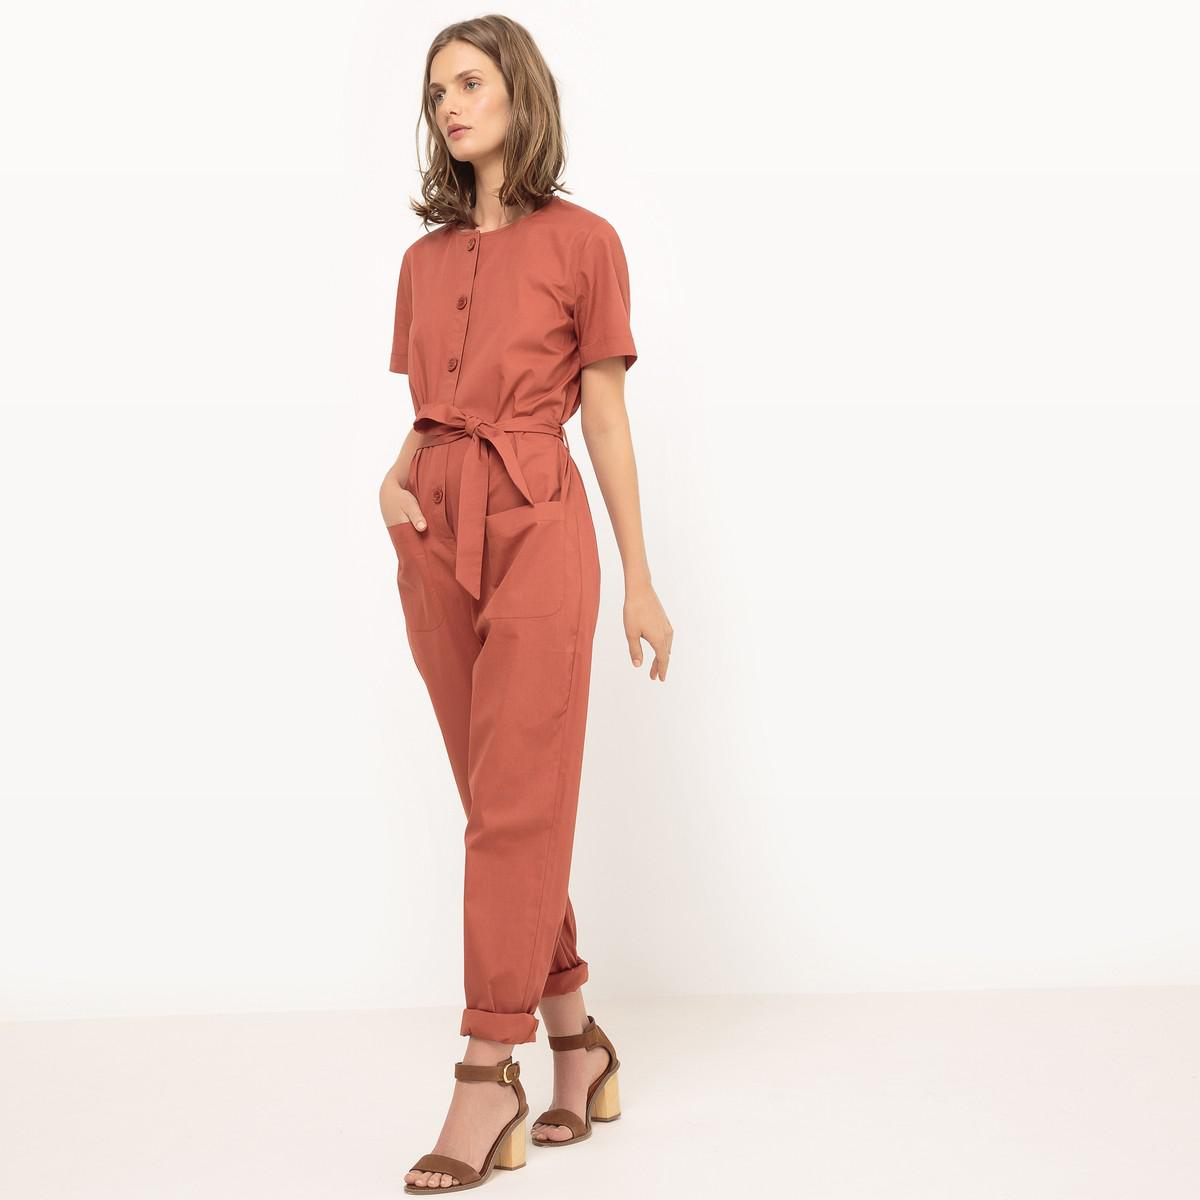 942ef0dca3a4 Lyst - La Redoute Plain Jumpsuit With Belt in Red